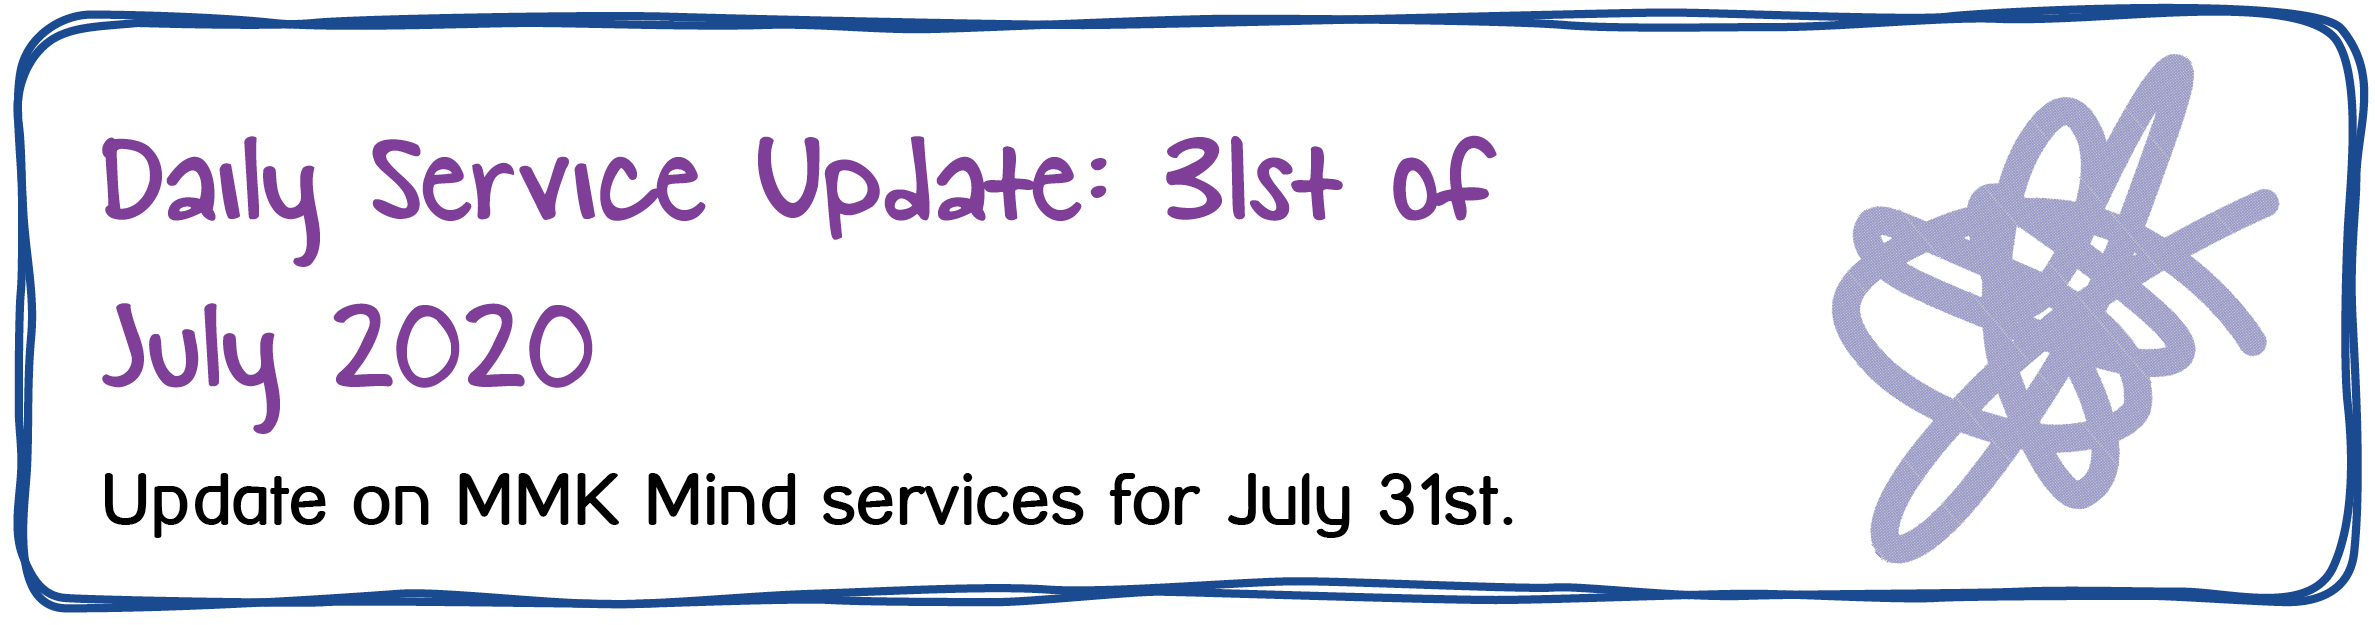 Daily Service Update: 31st of July 2020. Update on MMK Mind services for July 31st.